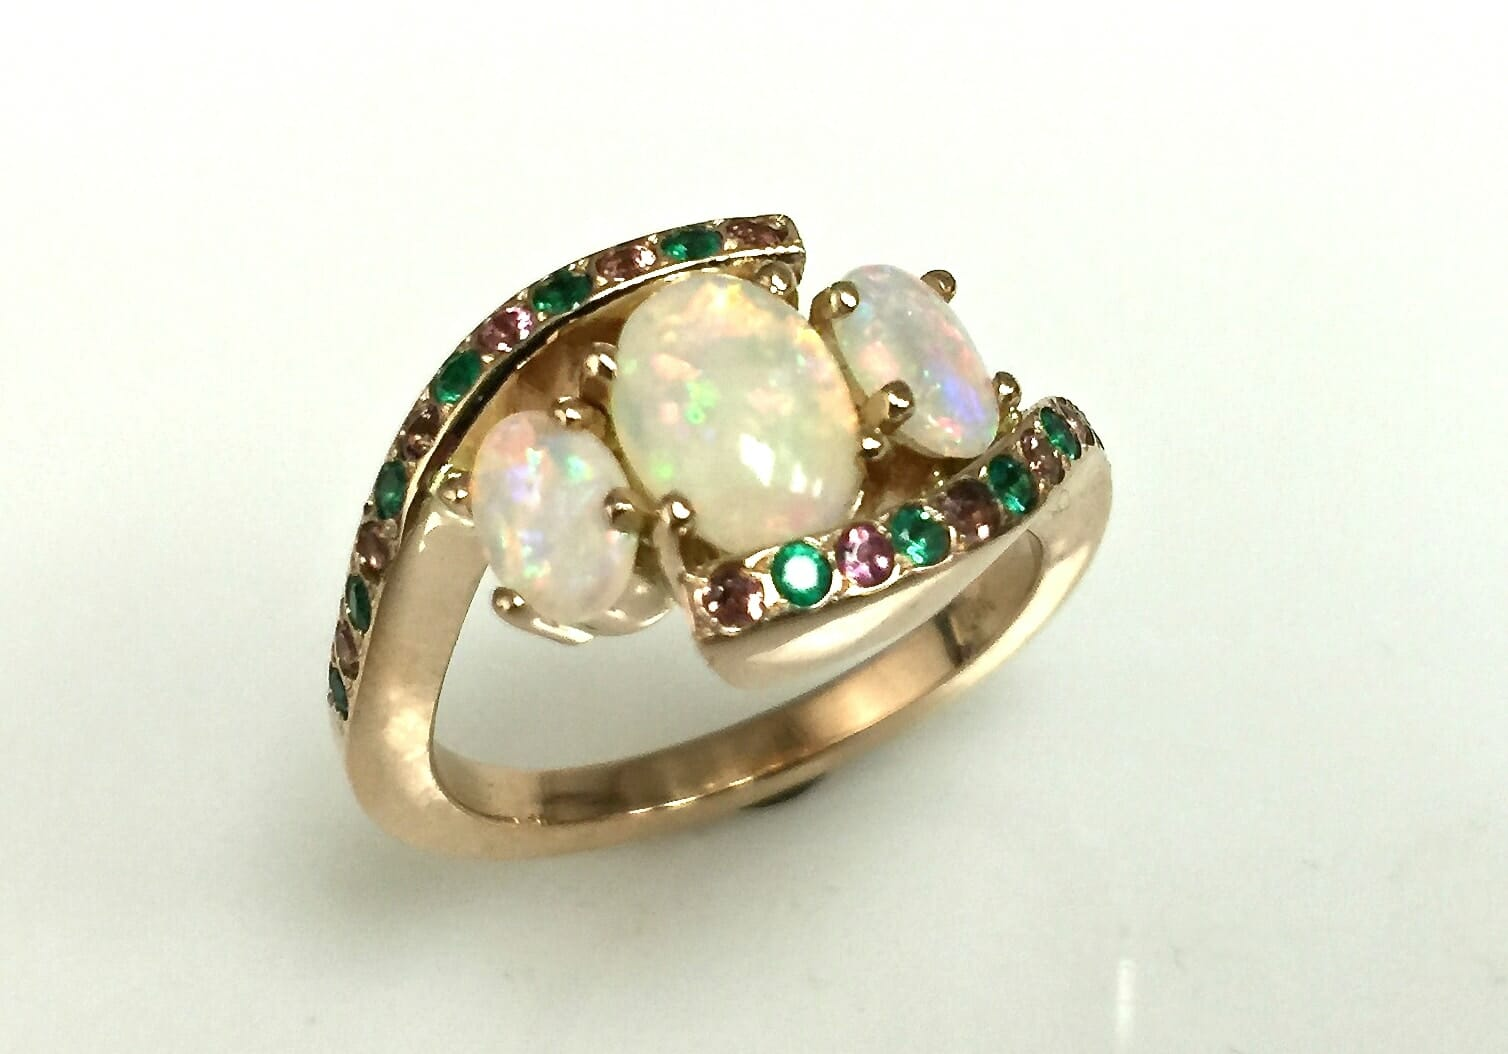 Rj October Birthstone Ring